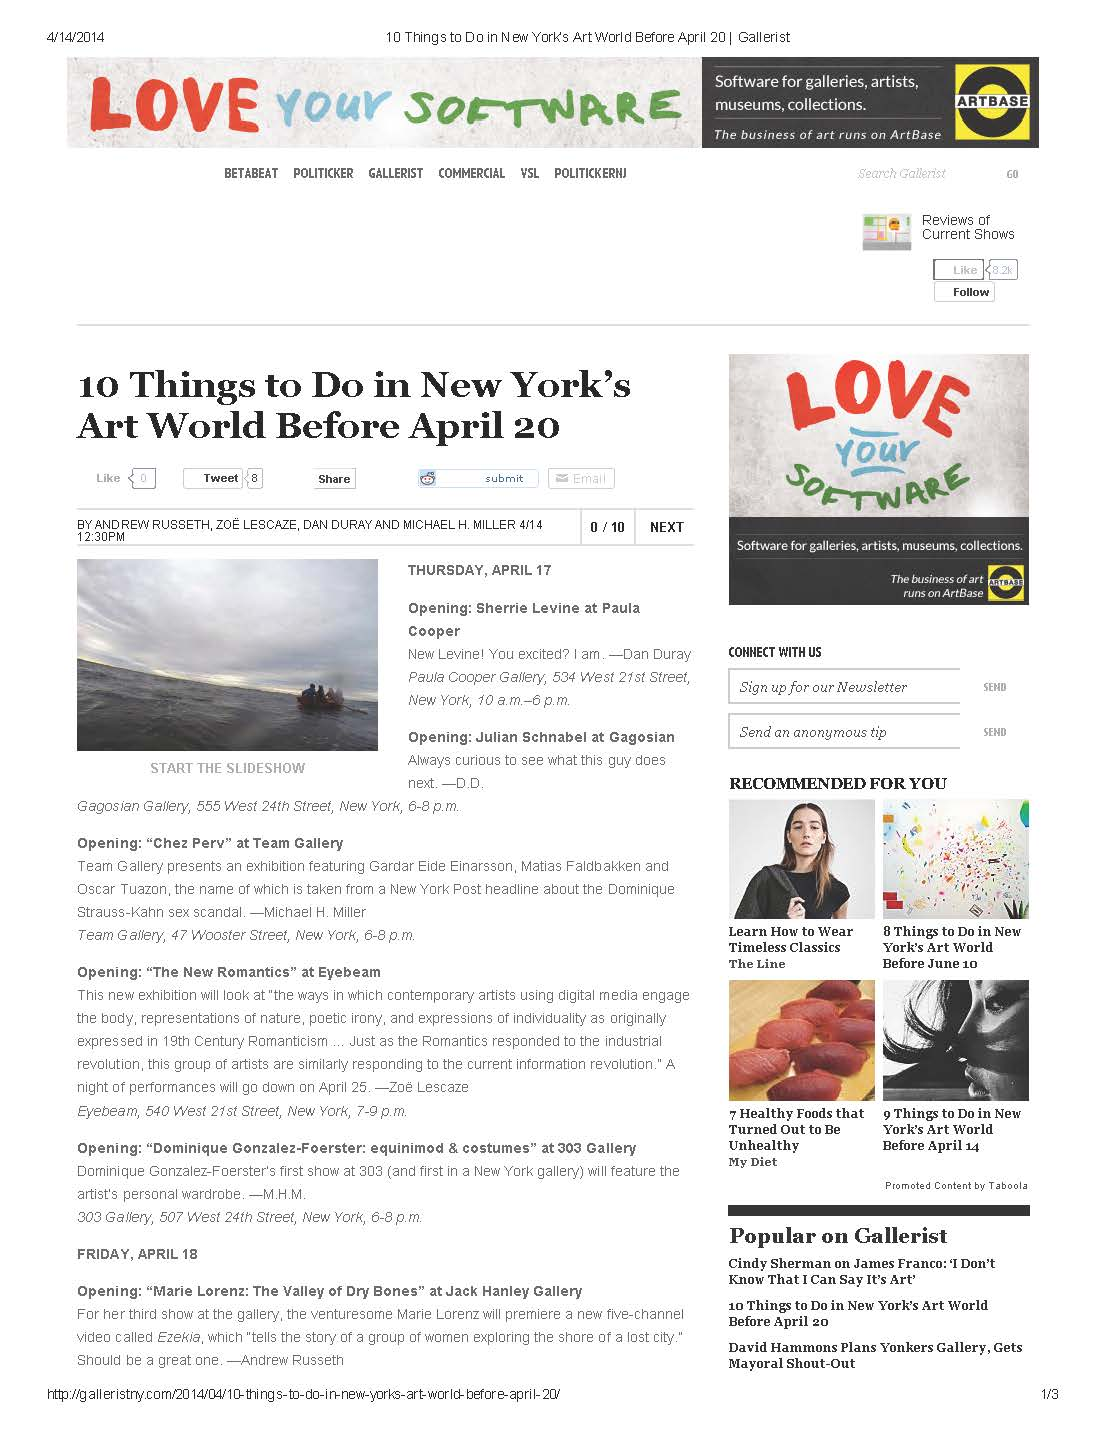 Gallerist (New York Observer), 04/04/14 10 things to do in New York